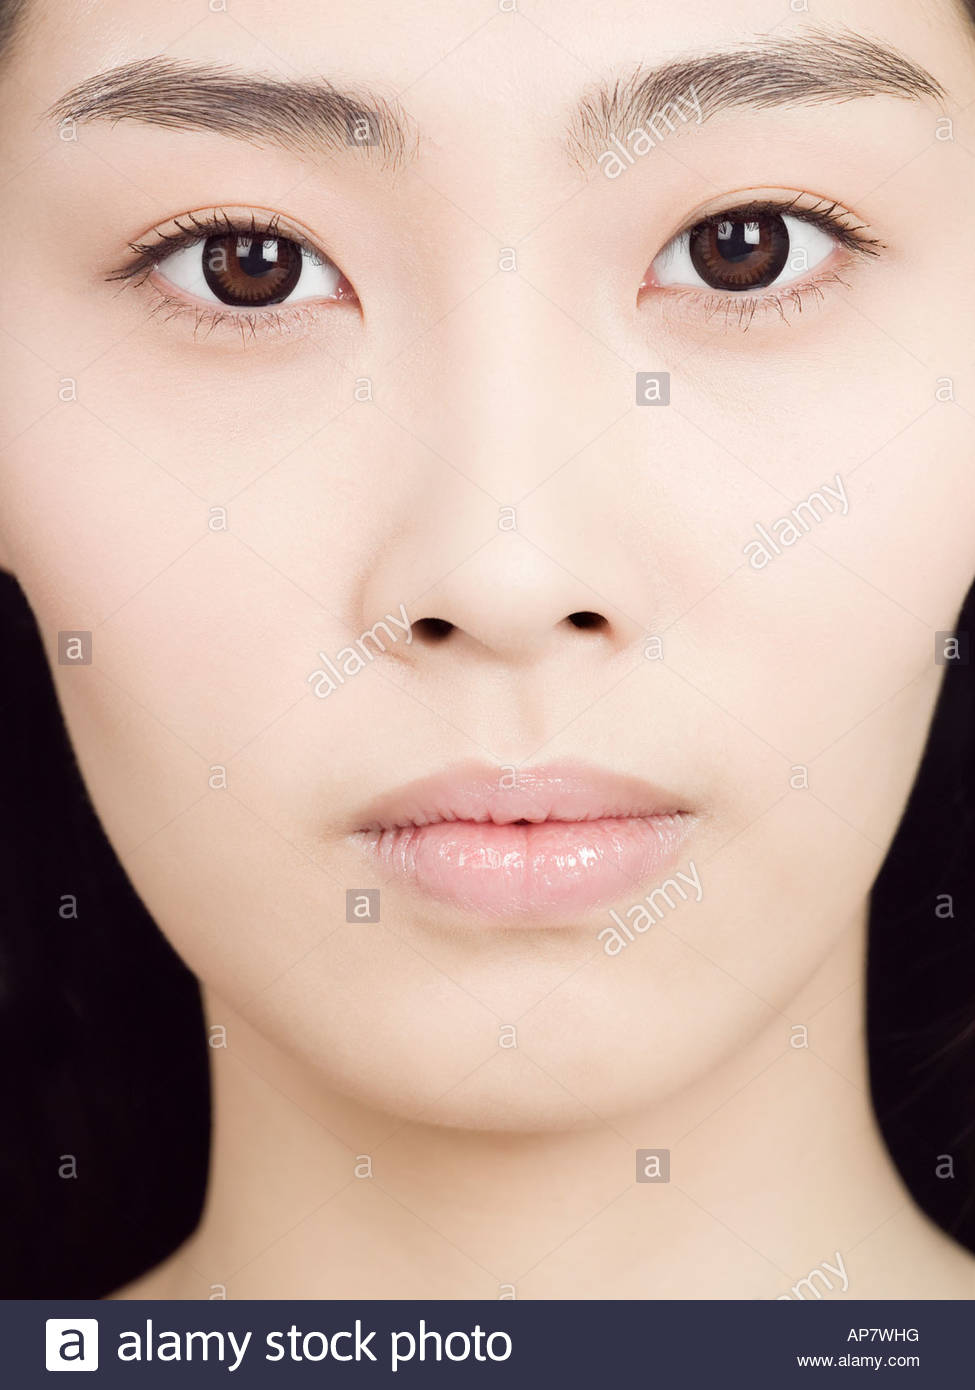 Cropped portrait of a chinese woman - Stock Image